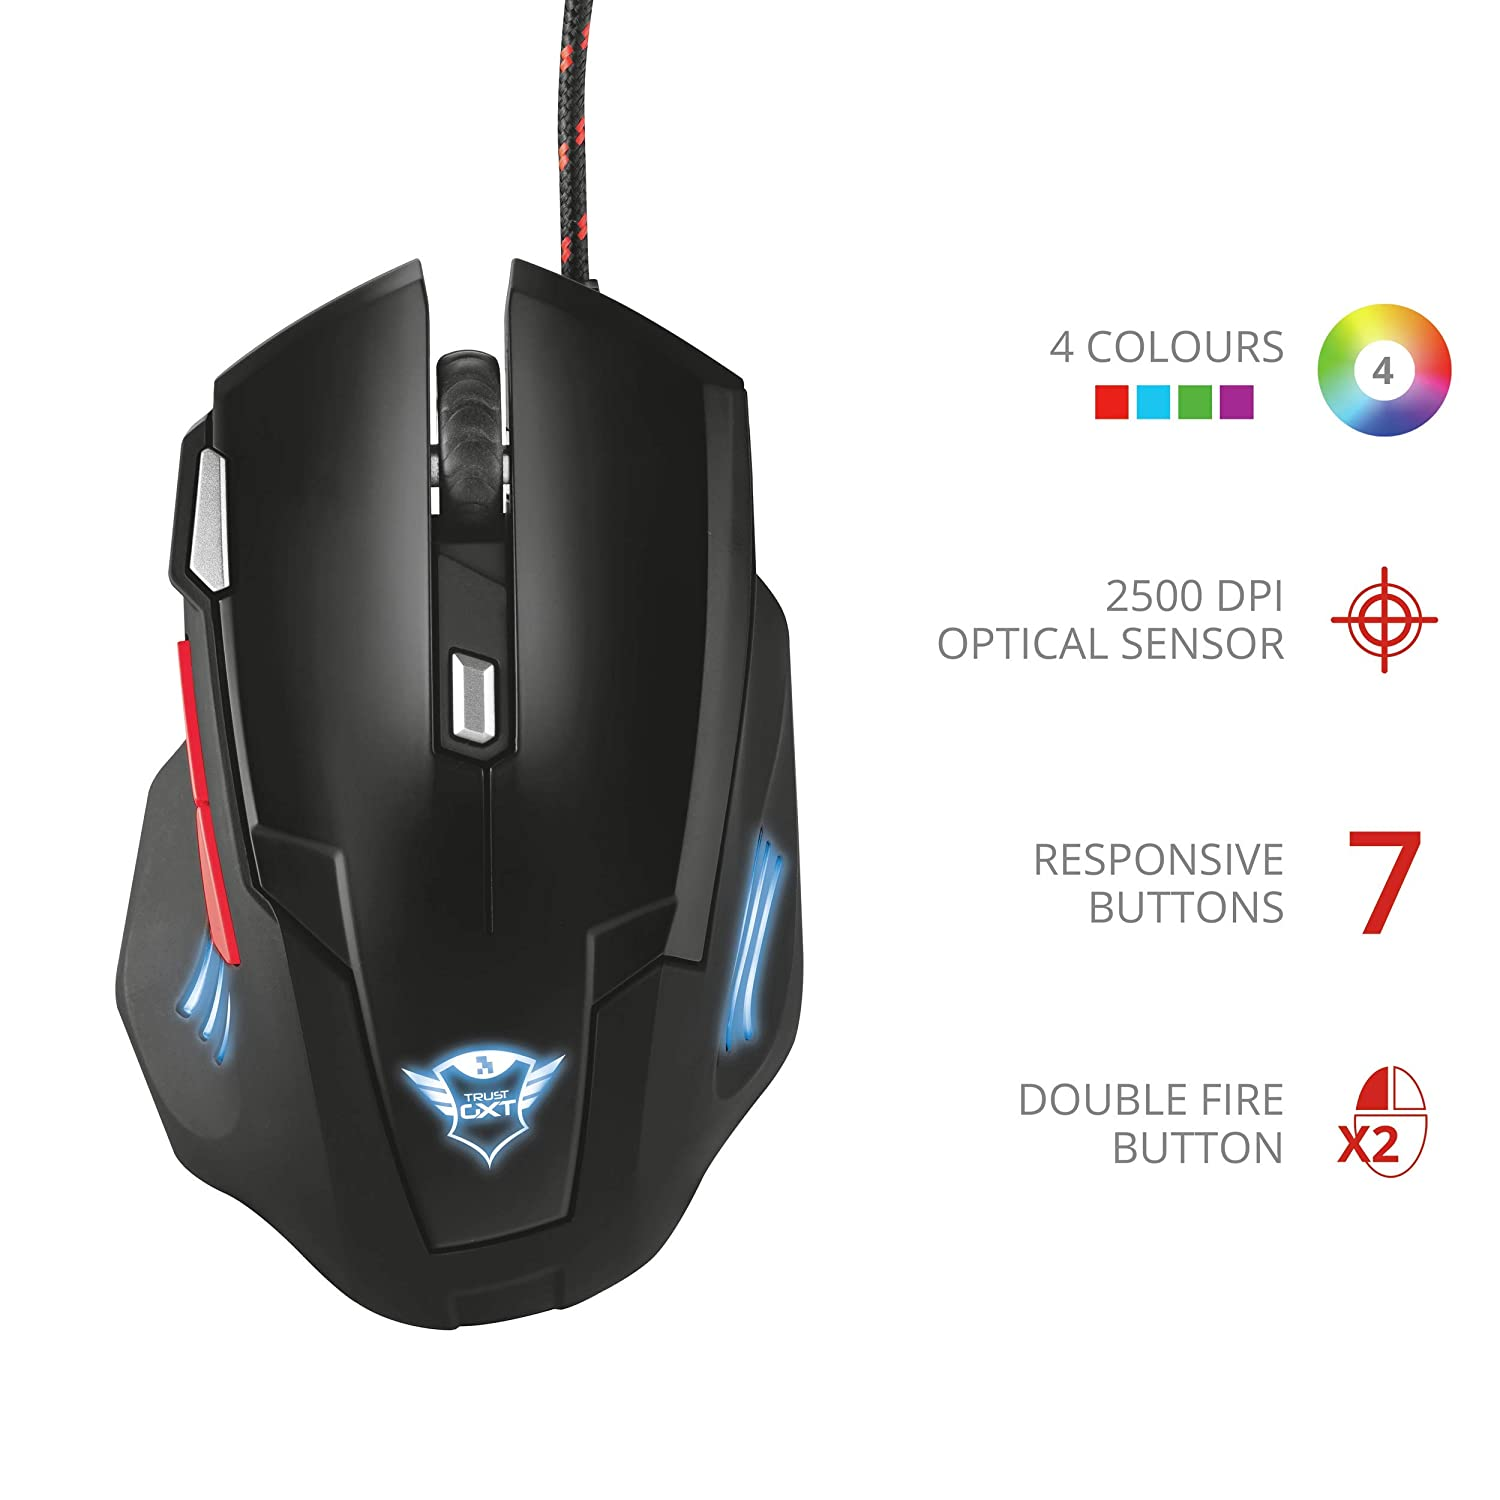 6 Responsive Buttons-Black Trust GXT 105 Izza Illuminated Gaming Mouse 800-2400 DPI